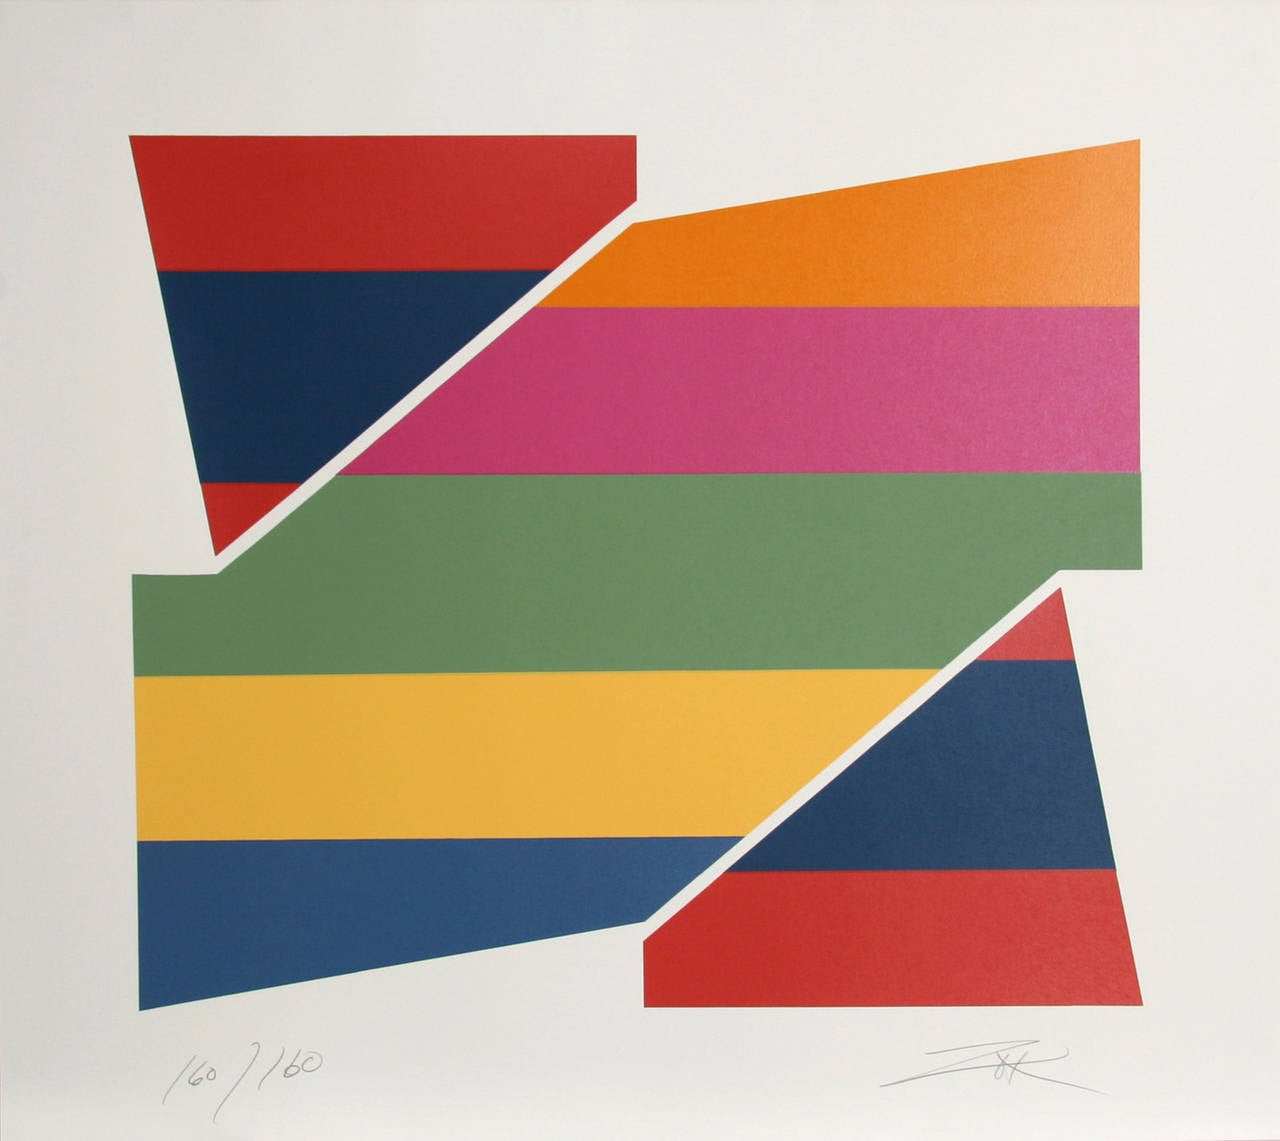 Rotation I, Geometric Abstract by Larry Zox